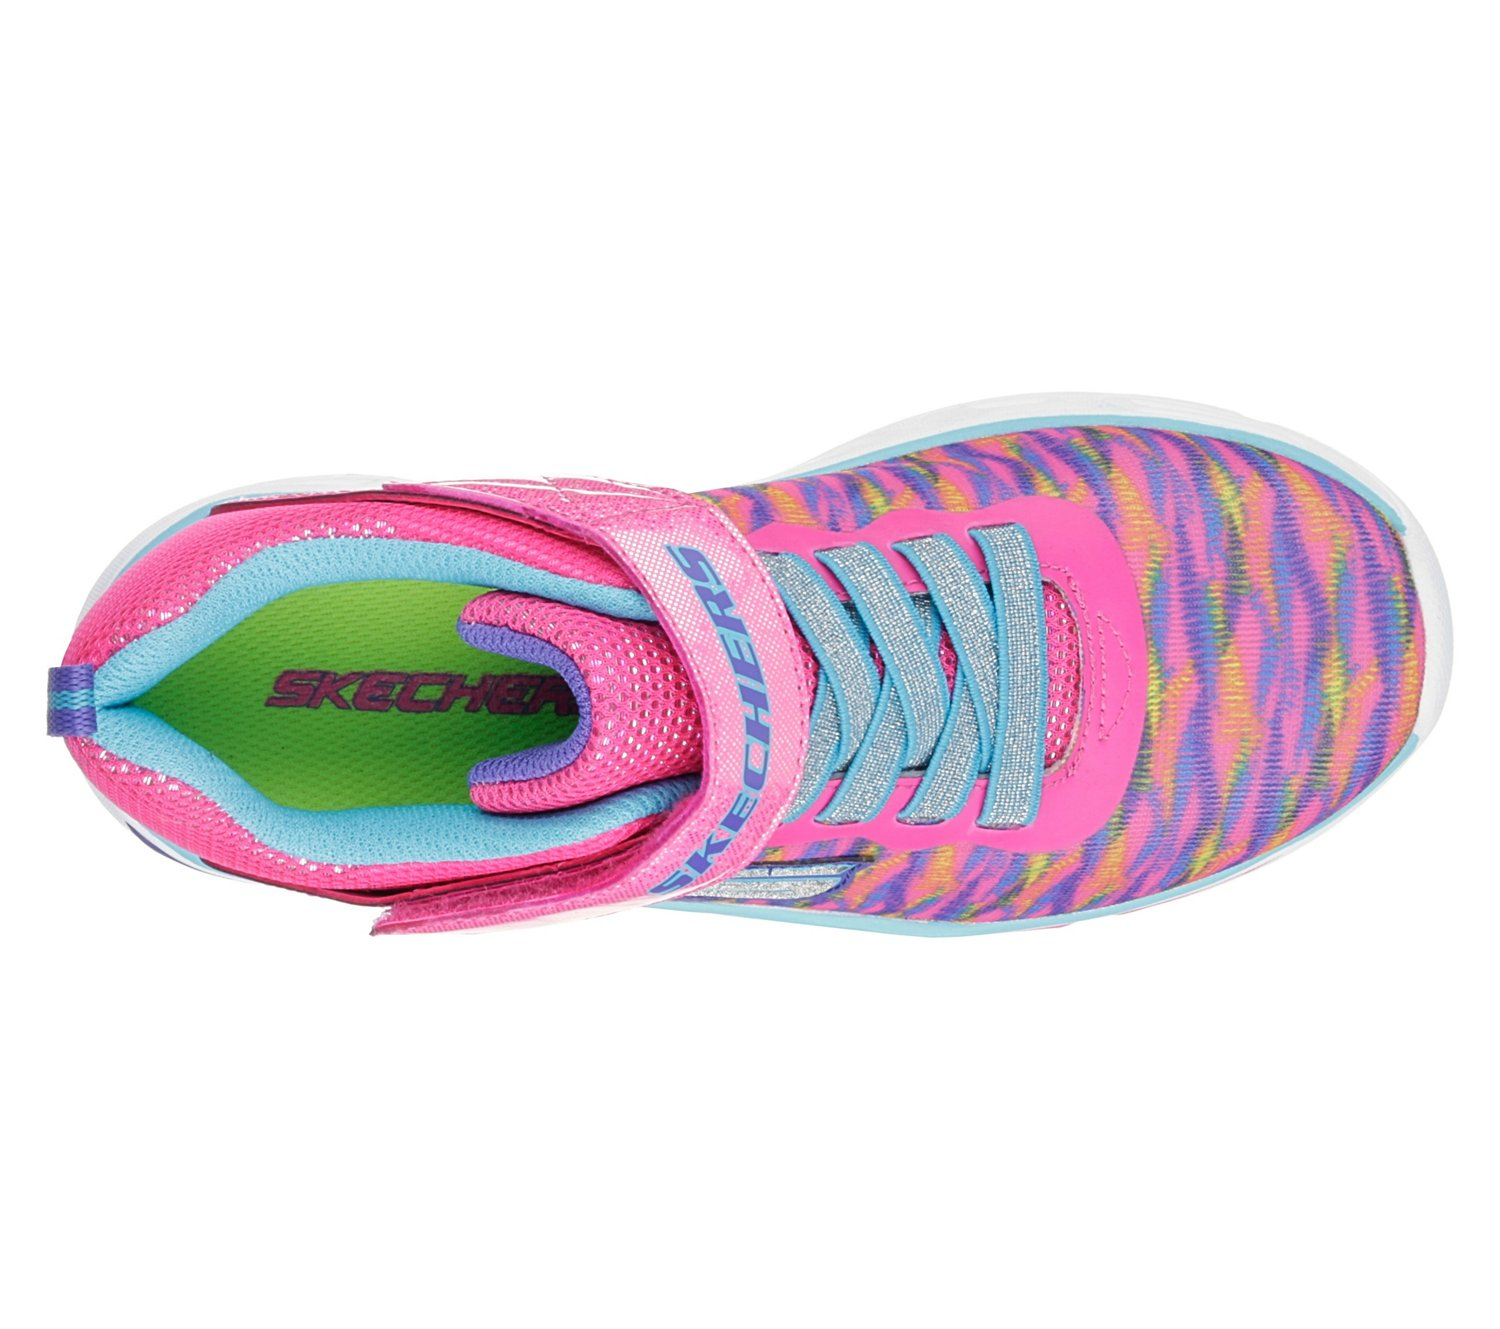 SKECHERS Girls' S Lights Litebeams Colorburst Shoes - view number 5